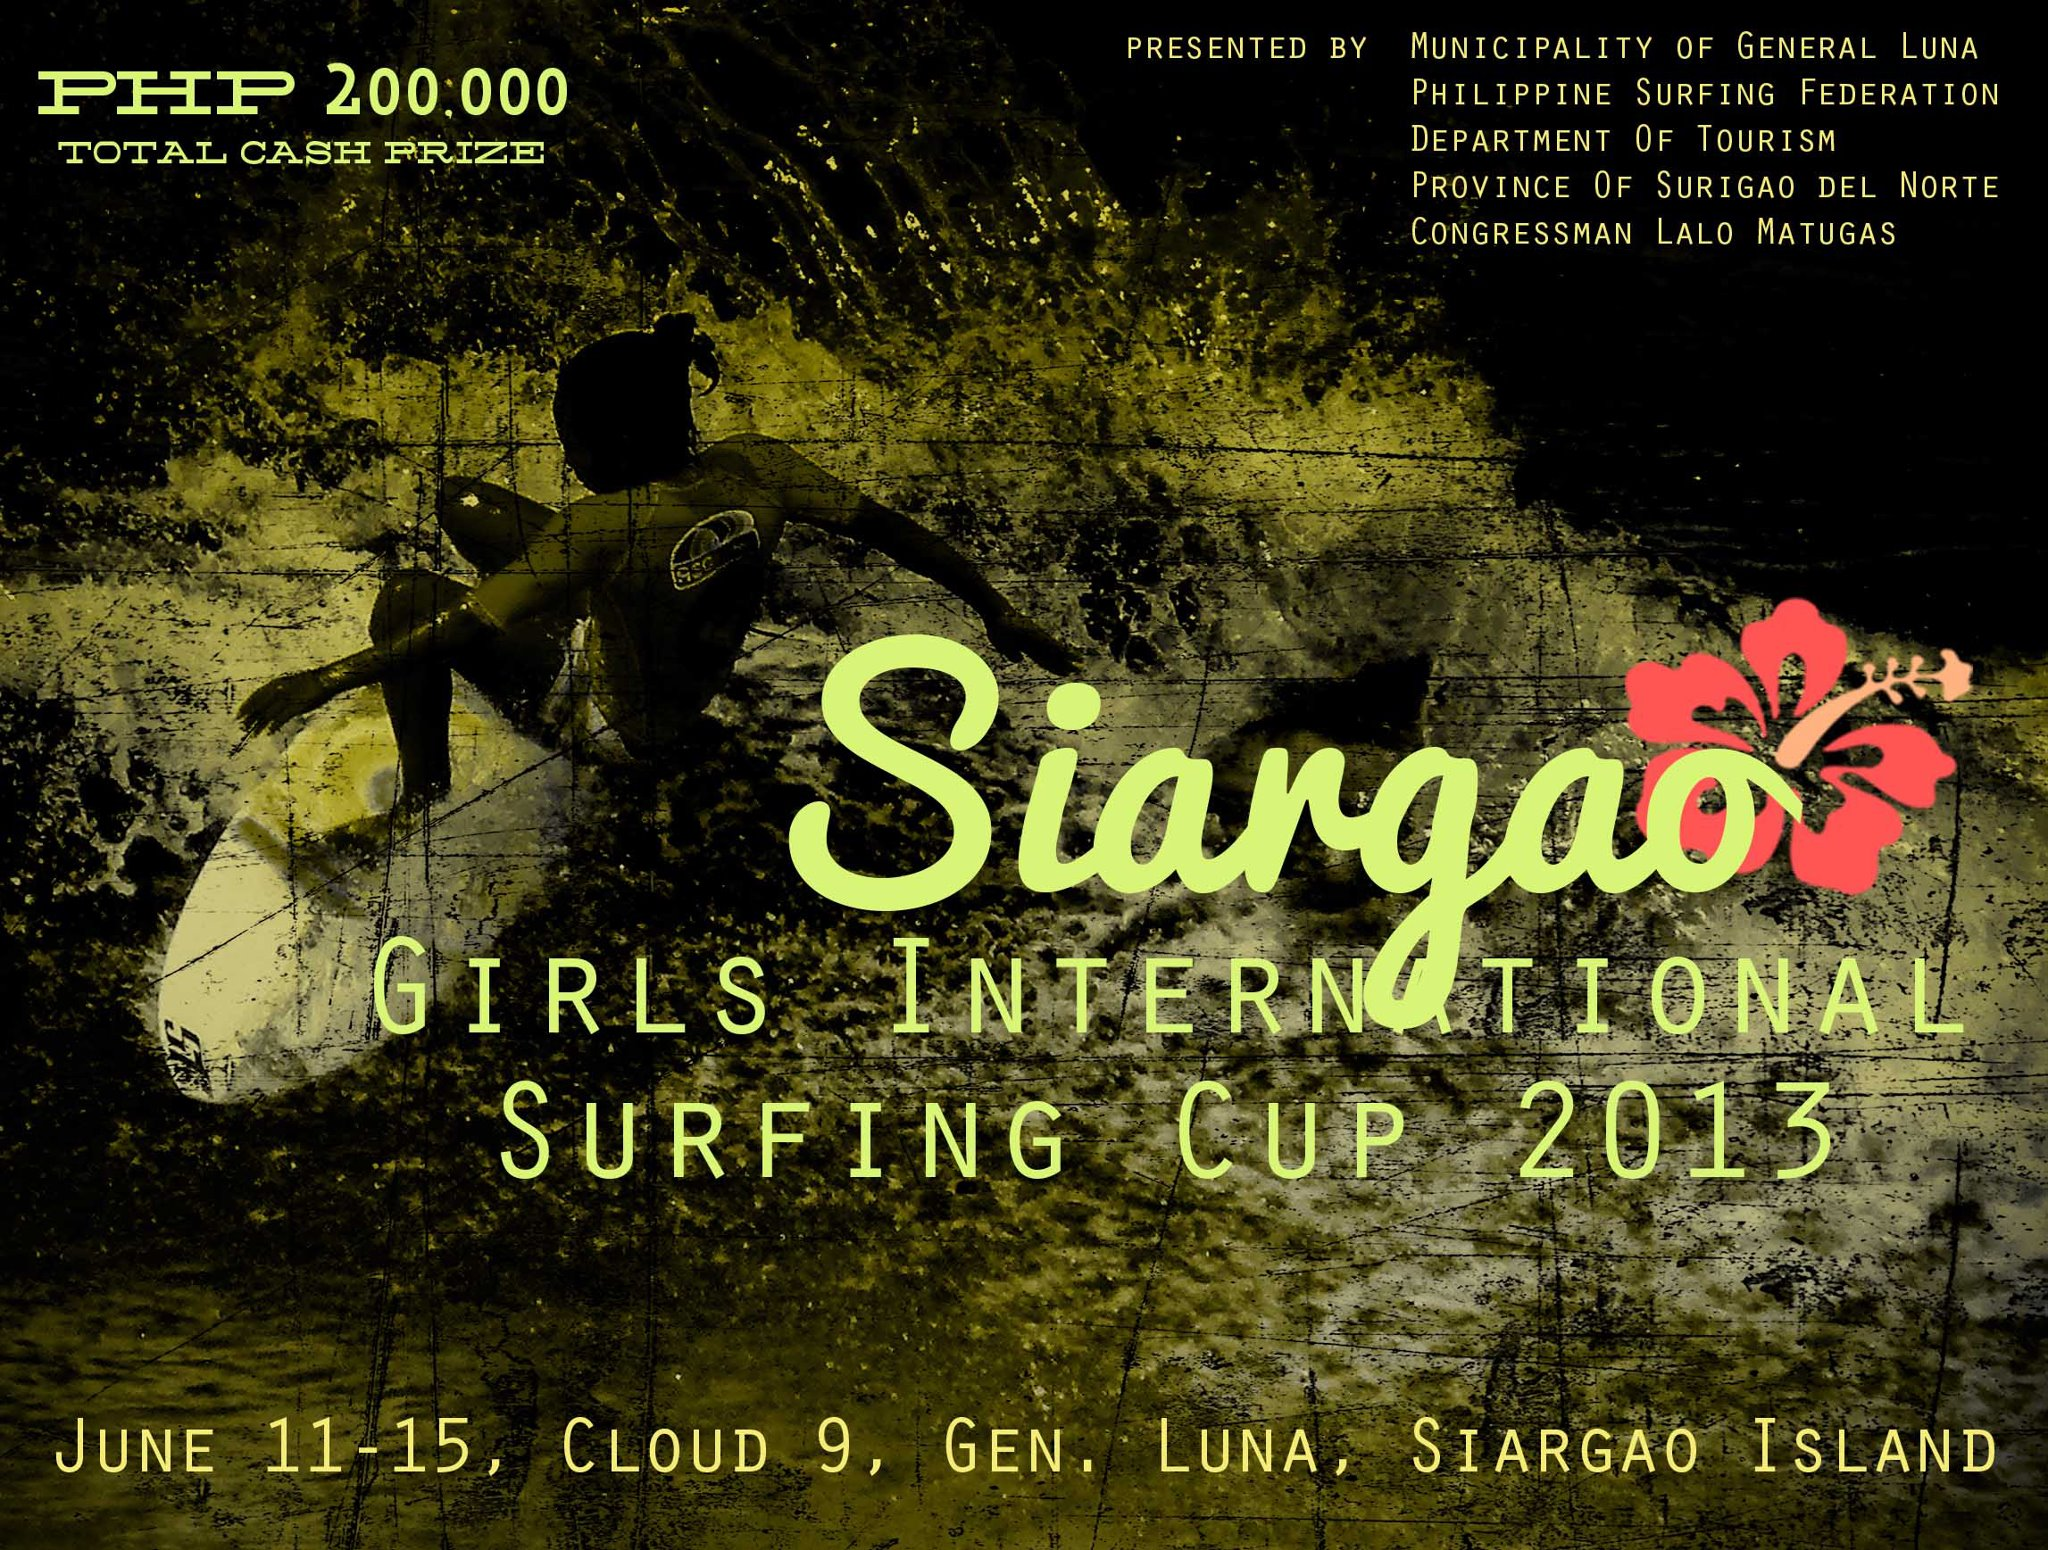 siargao-surf-cup-2013-poster